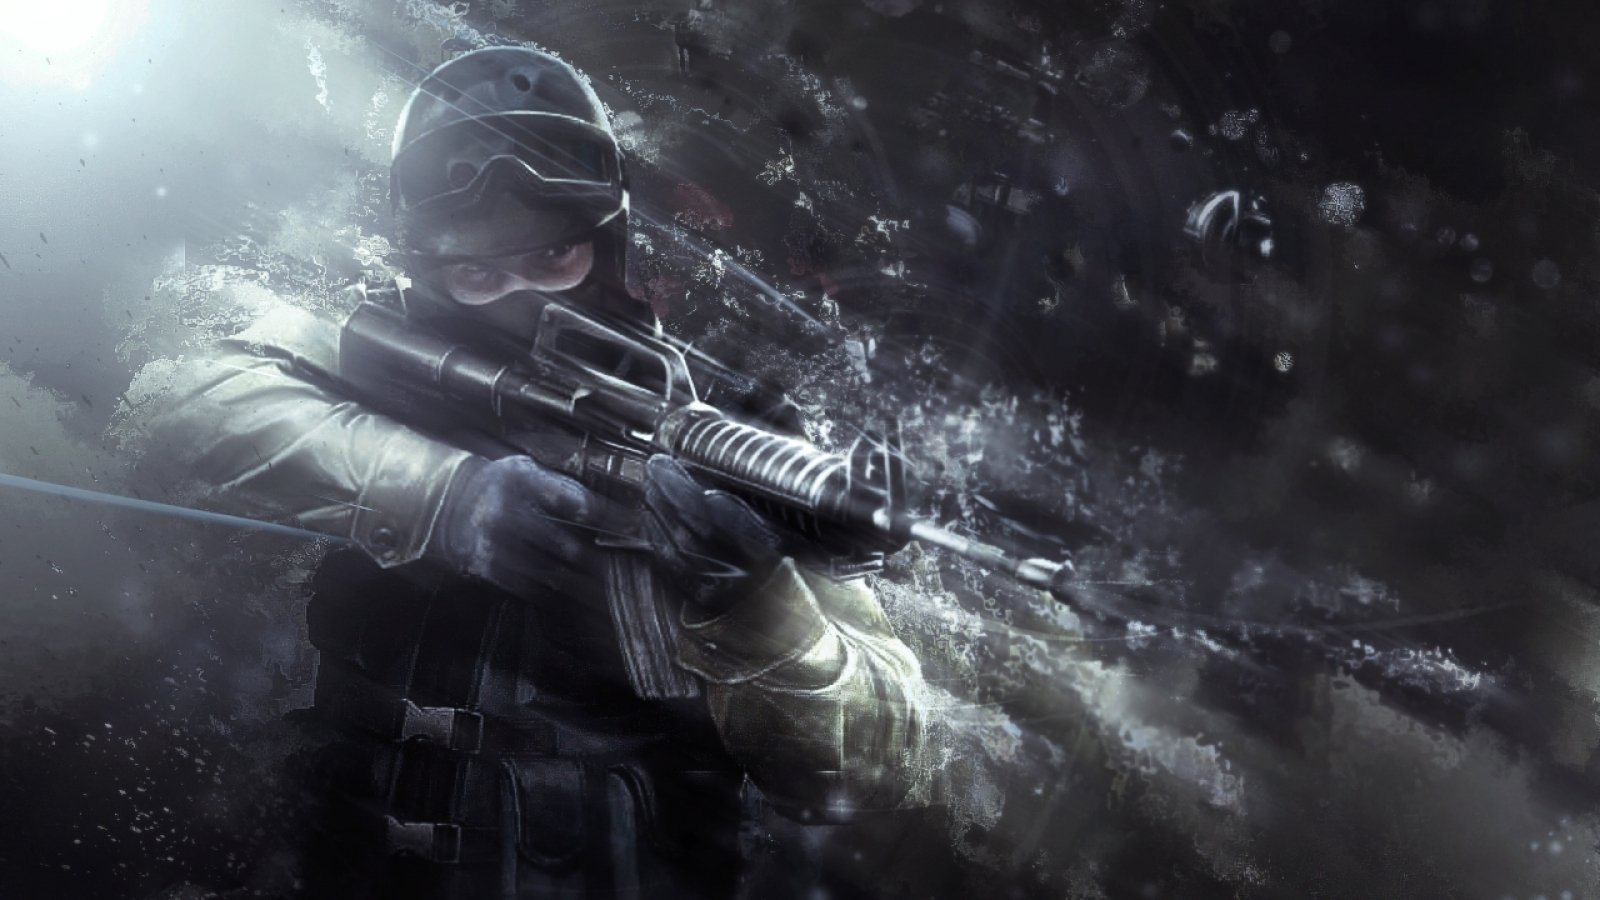 Counter strike source wallpaper and background image for Wallpaper sources